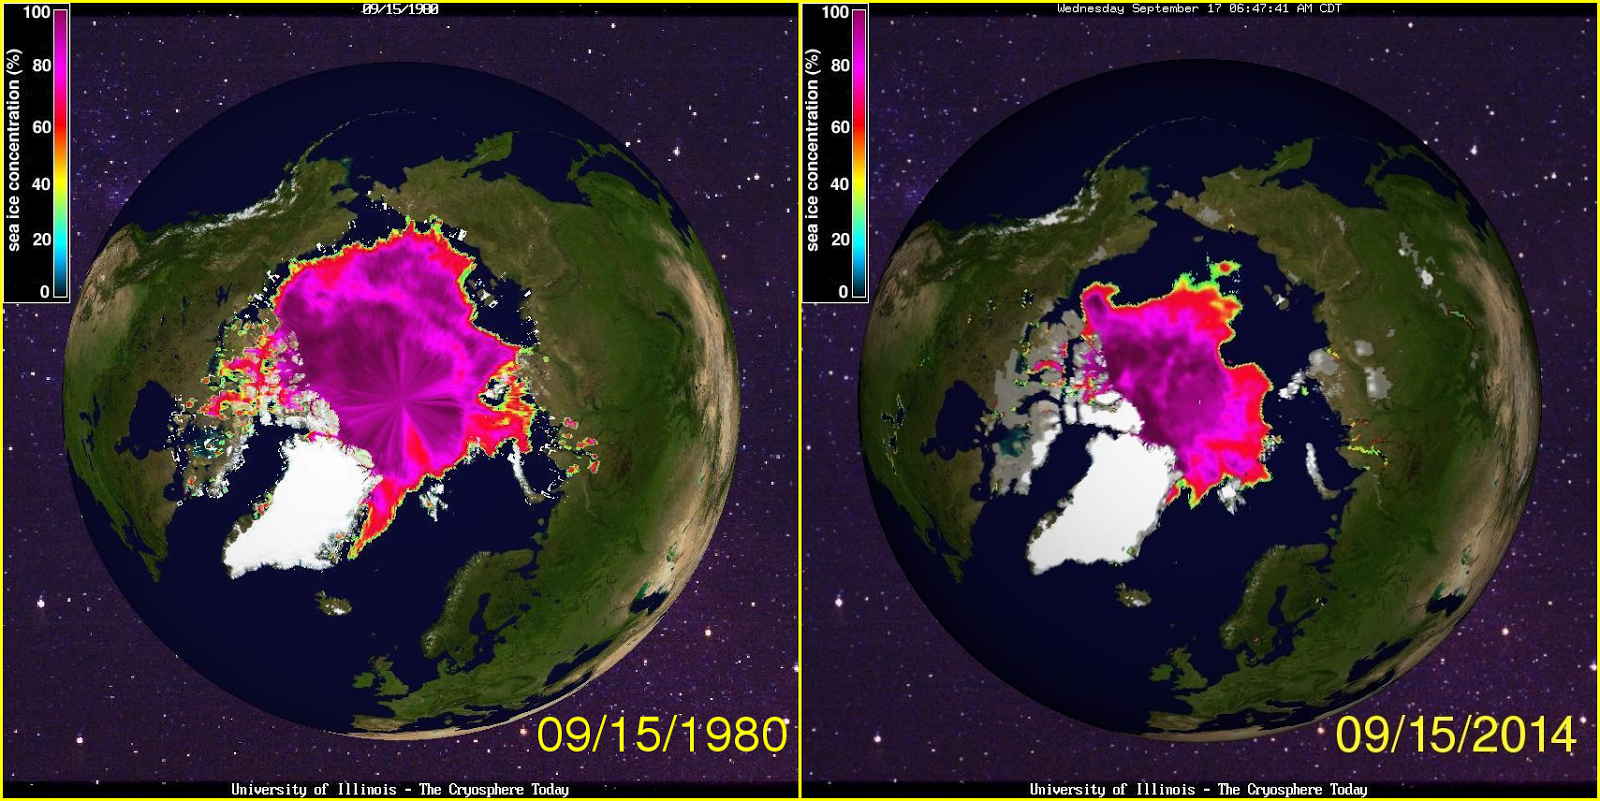 2014 Compare Arctic Ice